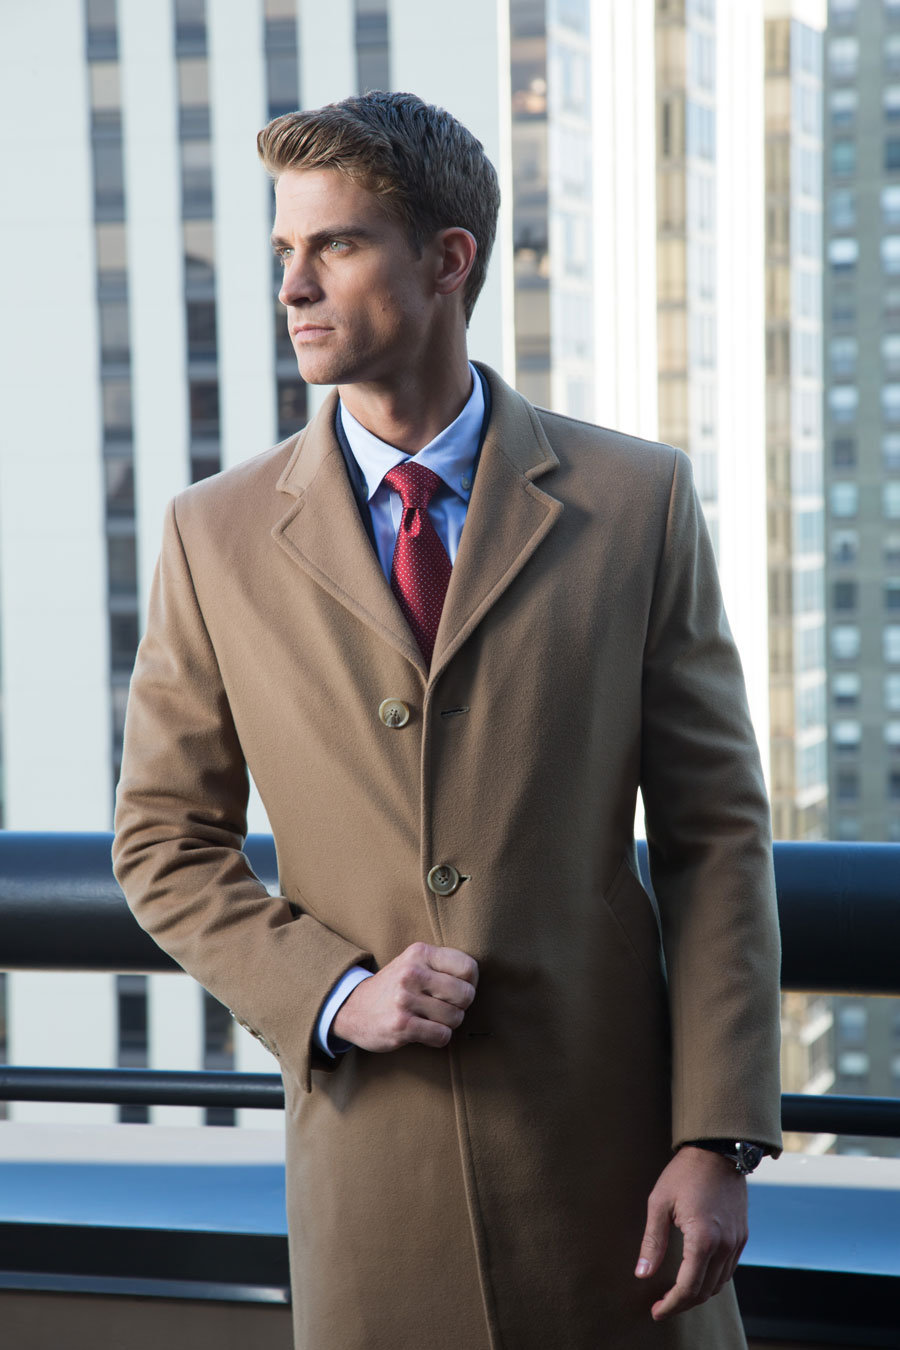 Camel-Cashmere-Custom-Overcoat-Outerwear-Notch-Lapel-singlebreasted-Lightblue-Shirt-Red-Tie-Winter-City-Balani-Chicago-900.jpg